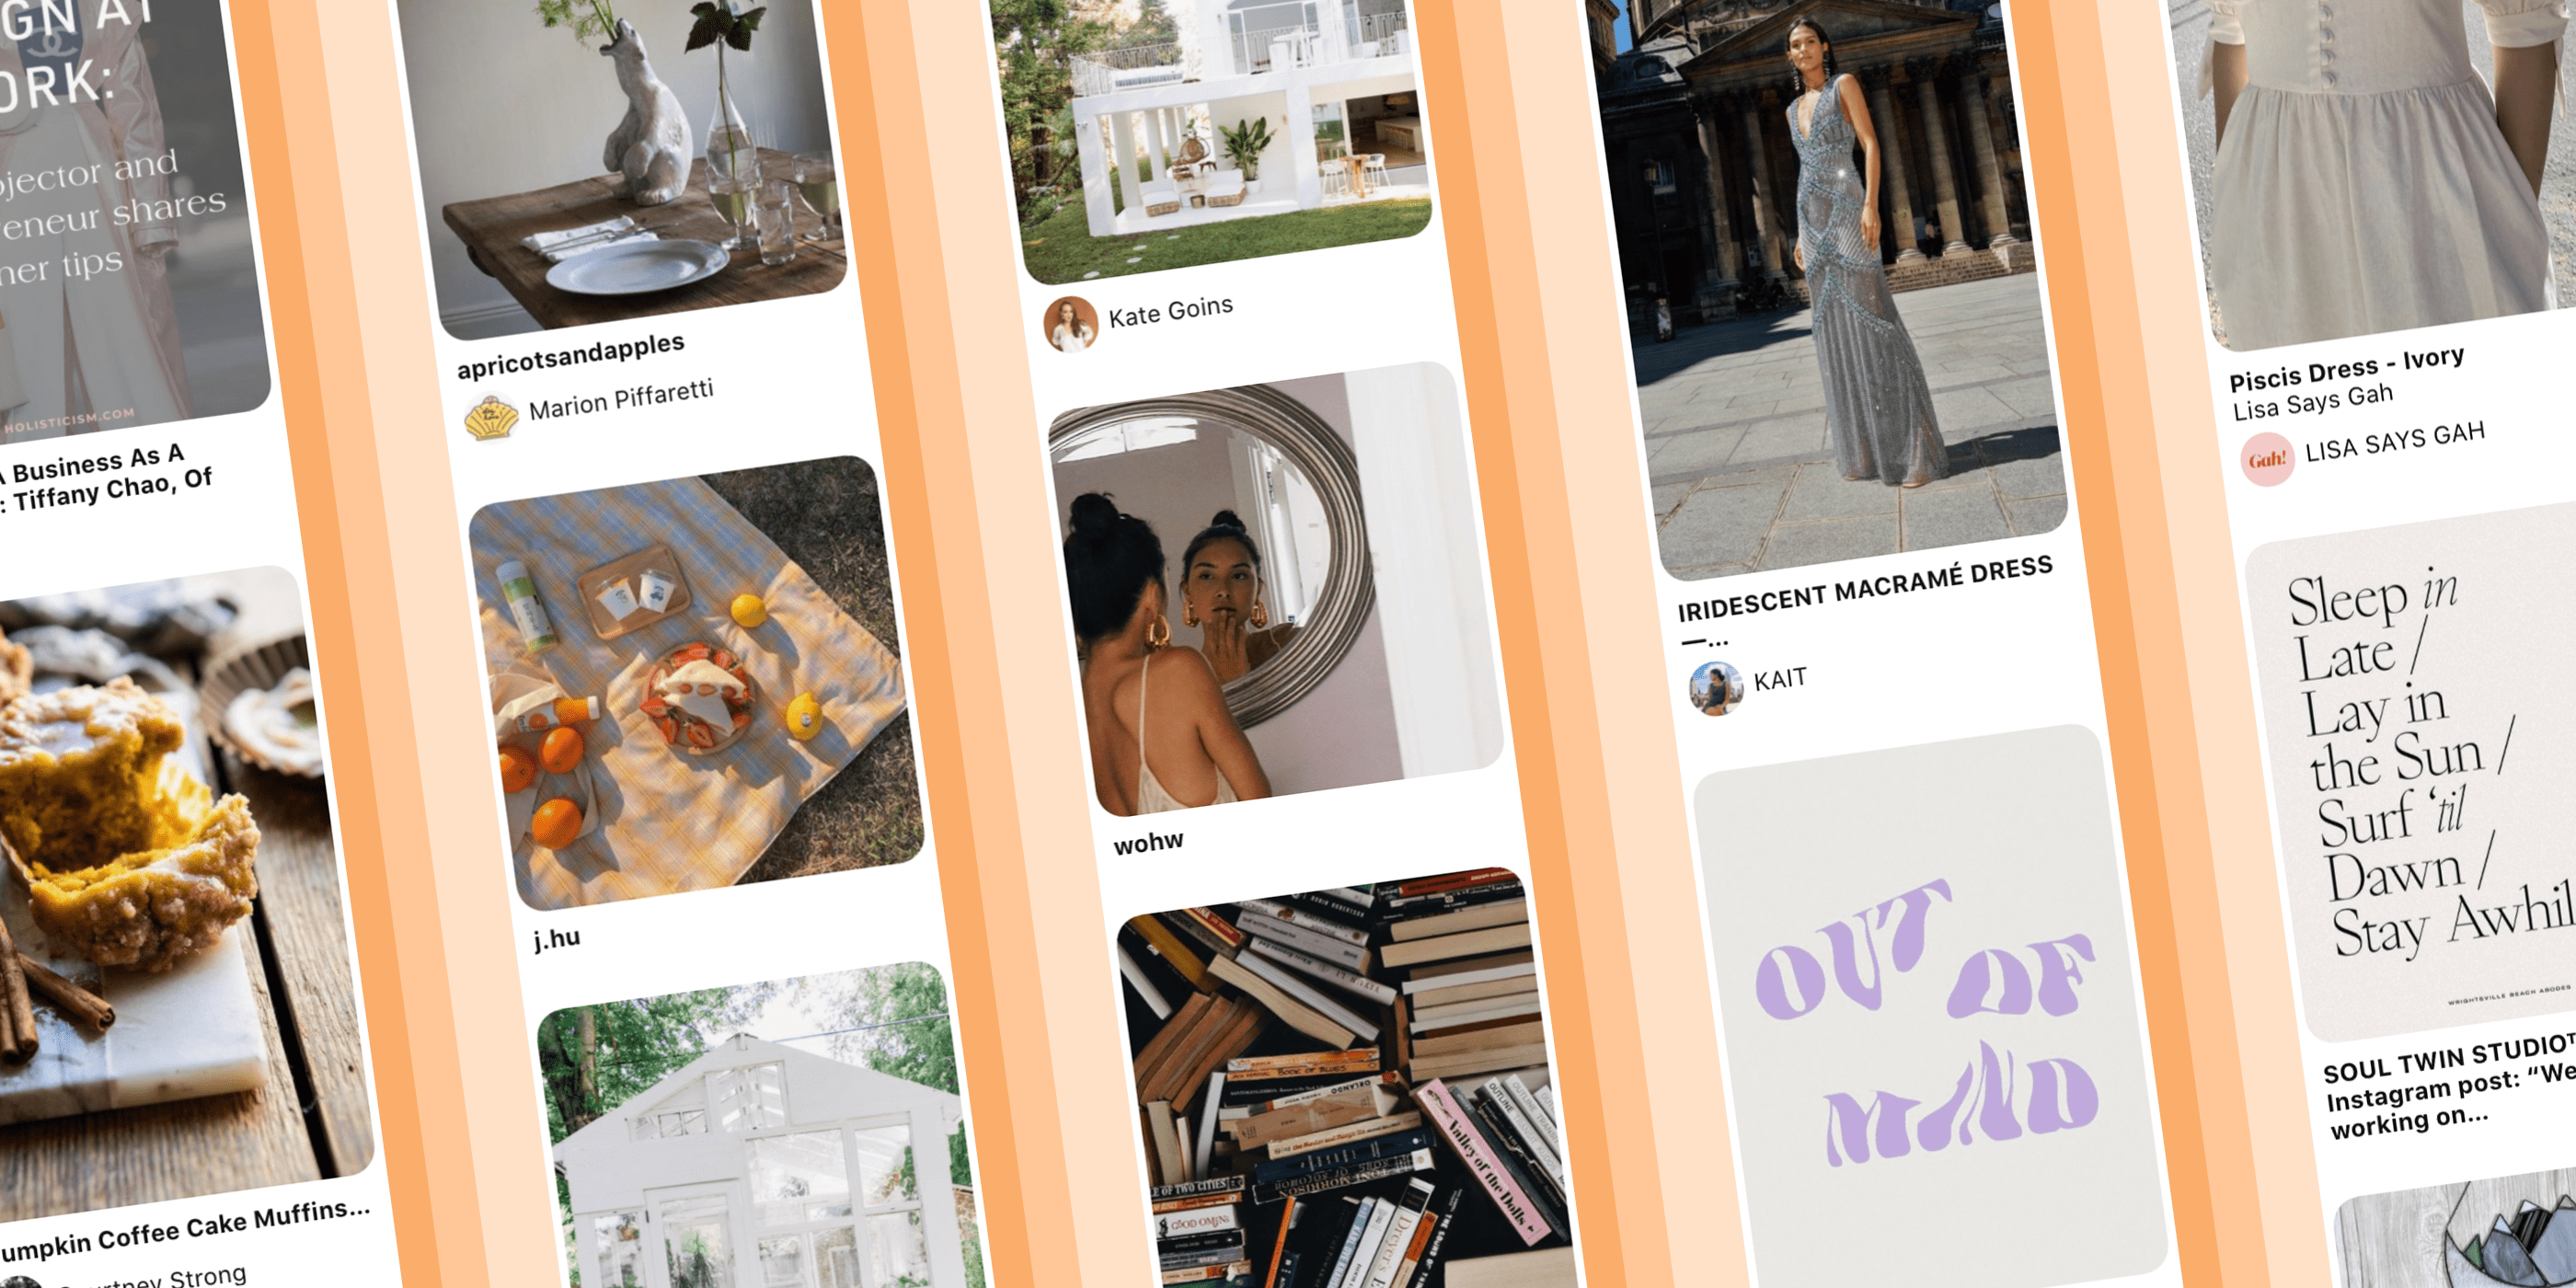 How to Use Pinterest: The Ultimate Beginners Guide 2020